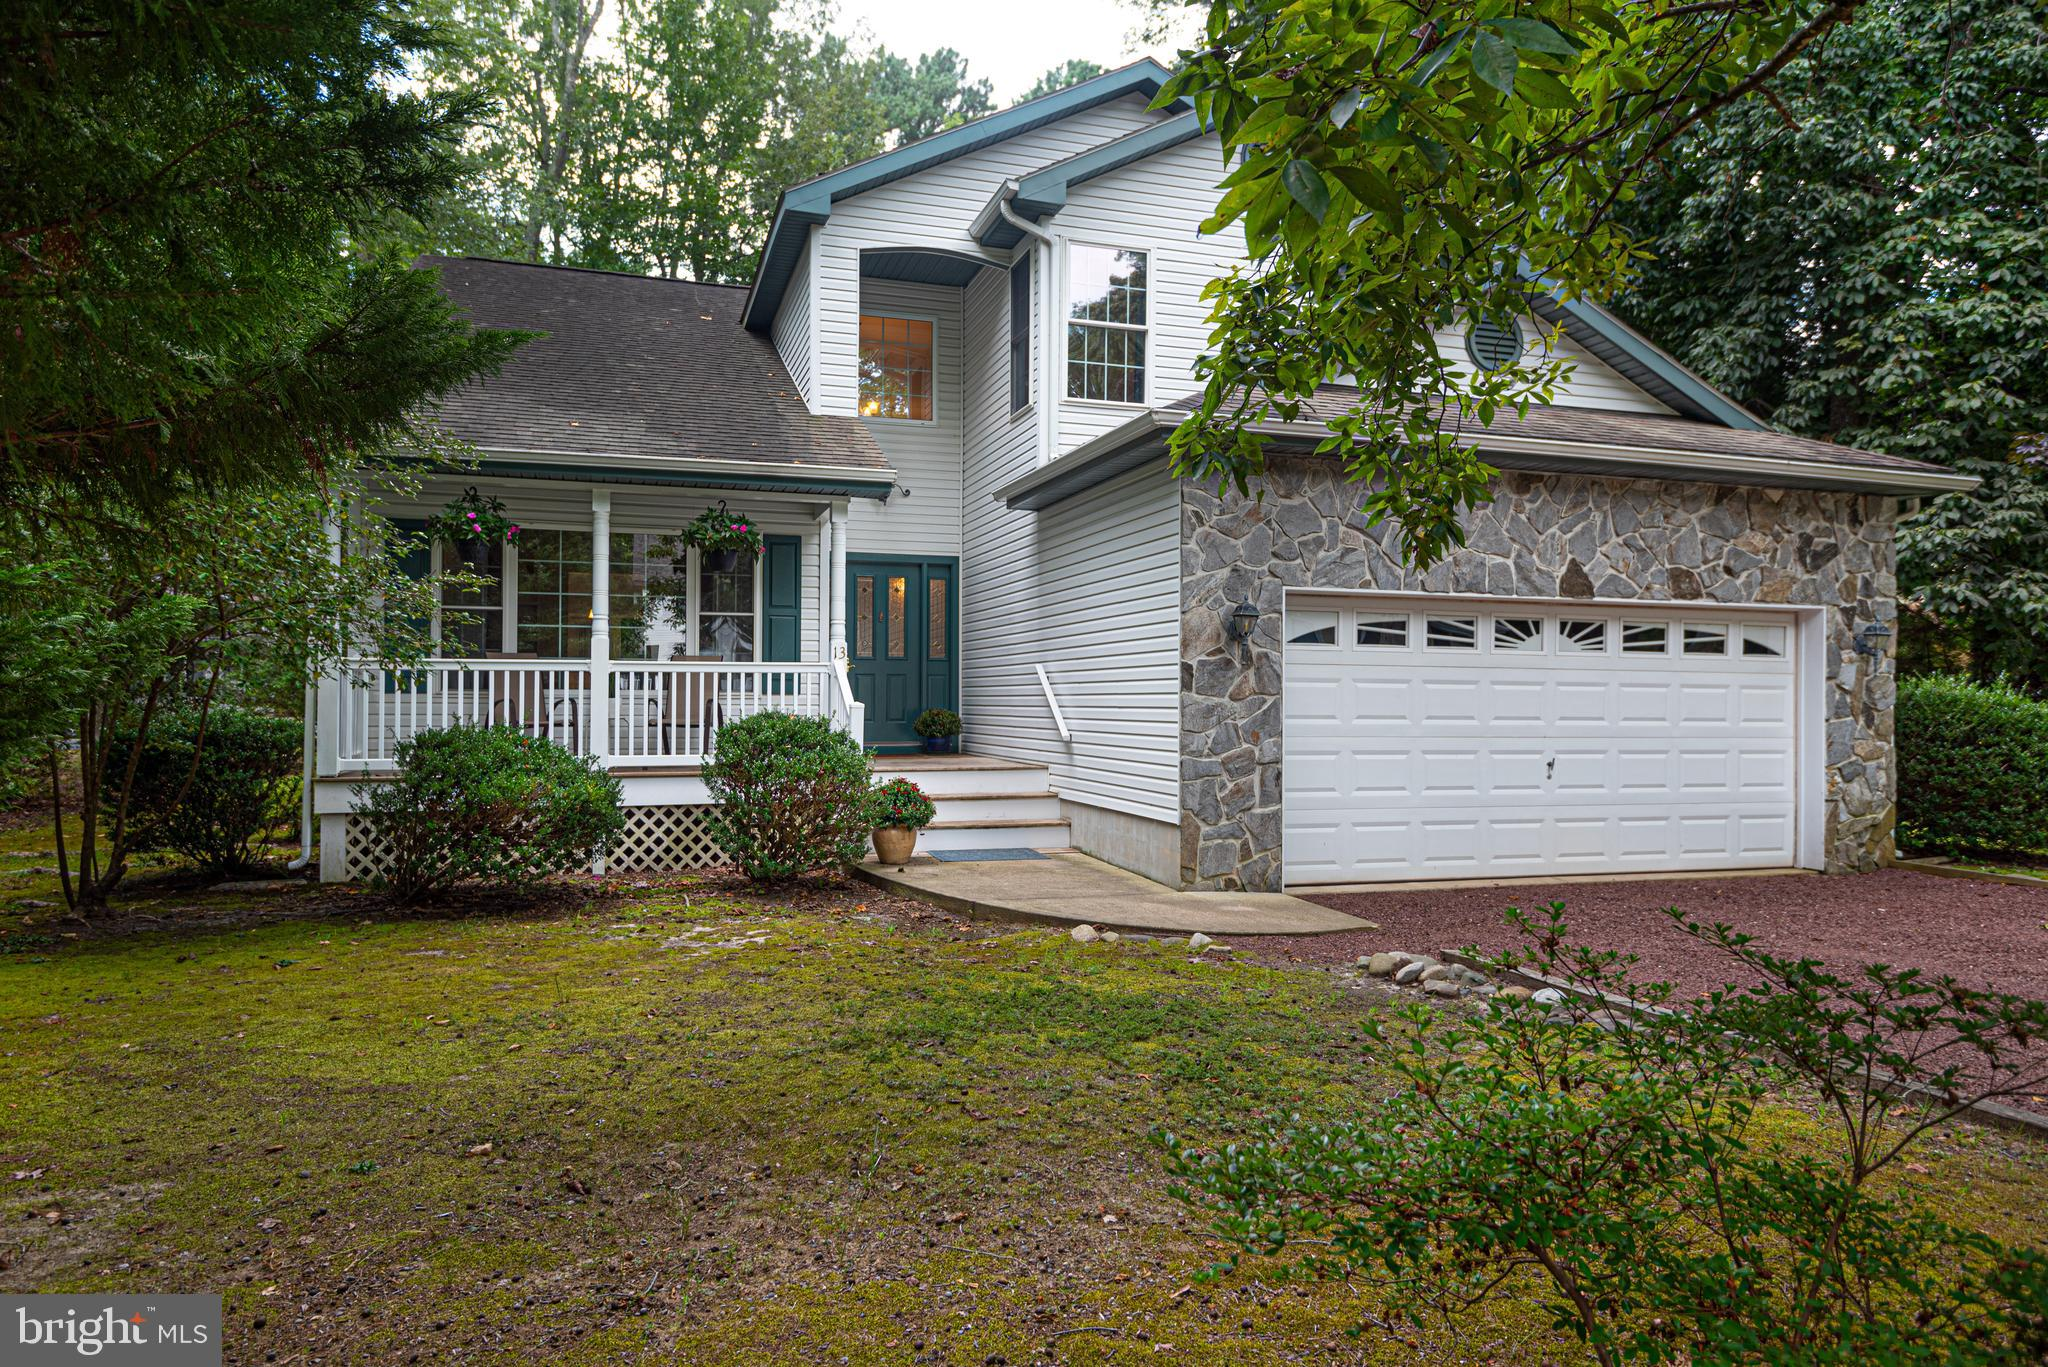 Stunning home on a beautiful oversized wooded lot in the highly sought after community of Ocean Pines.  Home has been beautifully updated, painted, and remodeled in October of 2019.  This home will go quickly!  Only two previous owners.  Nestled between two cul-de-sacs, this home is a rare gem.  It is minutes from Ocean City, Assateague Island, and all the wonderful amenities that Ocean Pines has to offer, but is so quiet and peaceful that you would never know it.  With waterproof Coretec flooring, Fabuwood self-closing cabinets, brushed nickel lighting fixtures and lever door handles, new carpeting, bar area pendant lighting, dining & kitchen recessed lighting, dimmer switches, Quartz countertops, skylights, French doors, lots of walk in closets & storage throughout, large walk in laundry room, double garage with utility sink, cathedral ceilings in master and throughout the home, ceiling fans throughout, large master suite, walk in attic spaces,  large screened porch and patio area with picnic table, all electric home, 80 gallon hot water tank, multiple zone HVAC system, attic air handler recently replaced in Sept. 2020, washer and dryer replaced in 2015.  Well maintained neighborhood, great neighbors, and so much more!